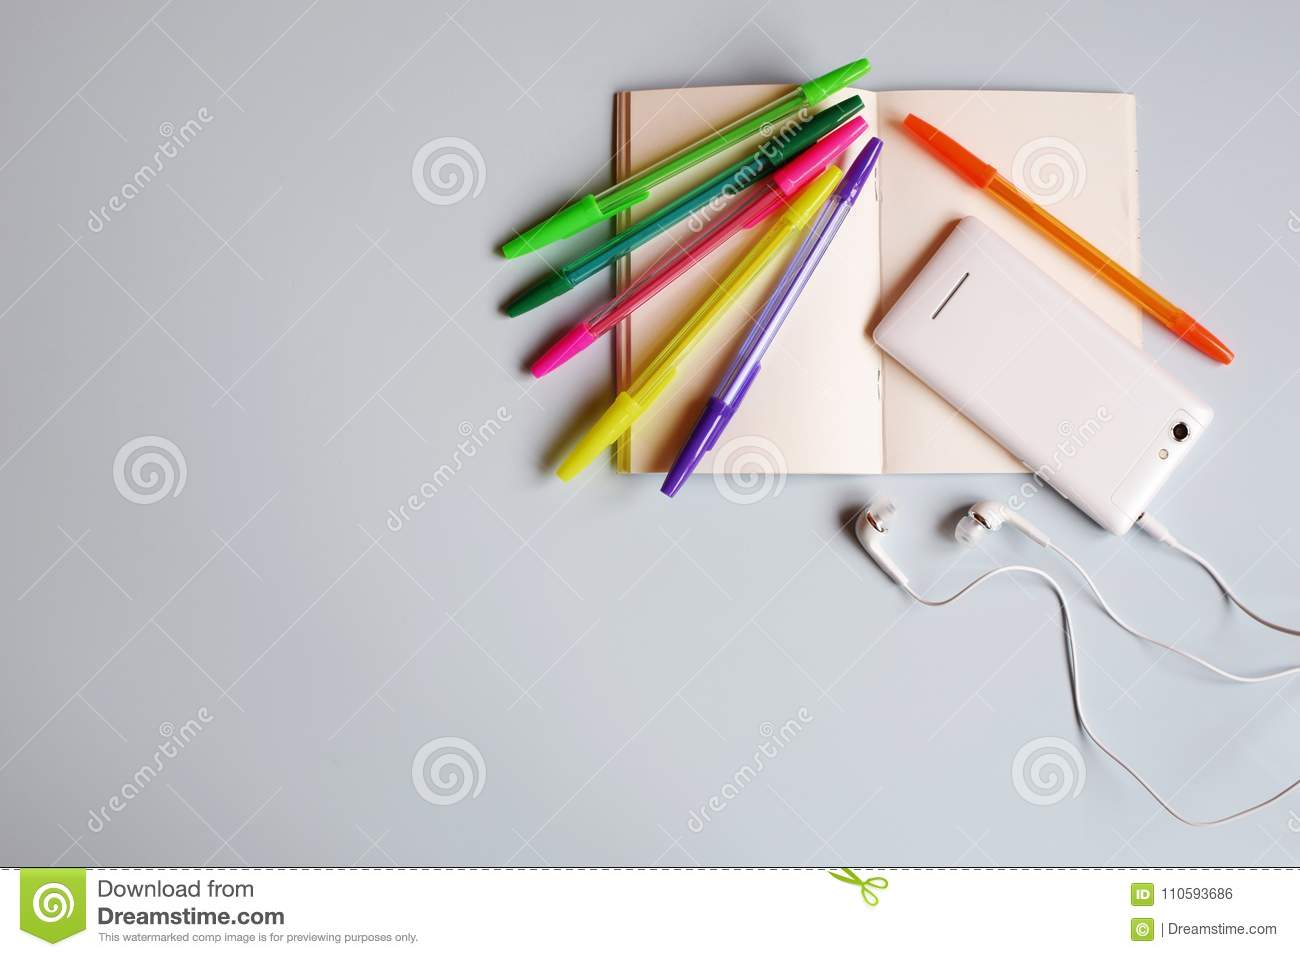 Blank notebook or diary, smart phone with earphones and multicolored pens